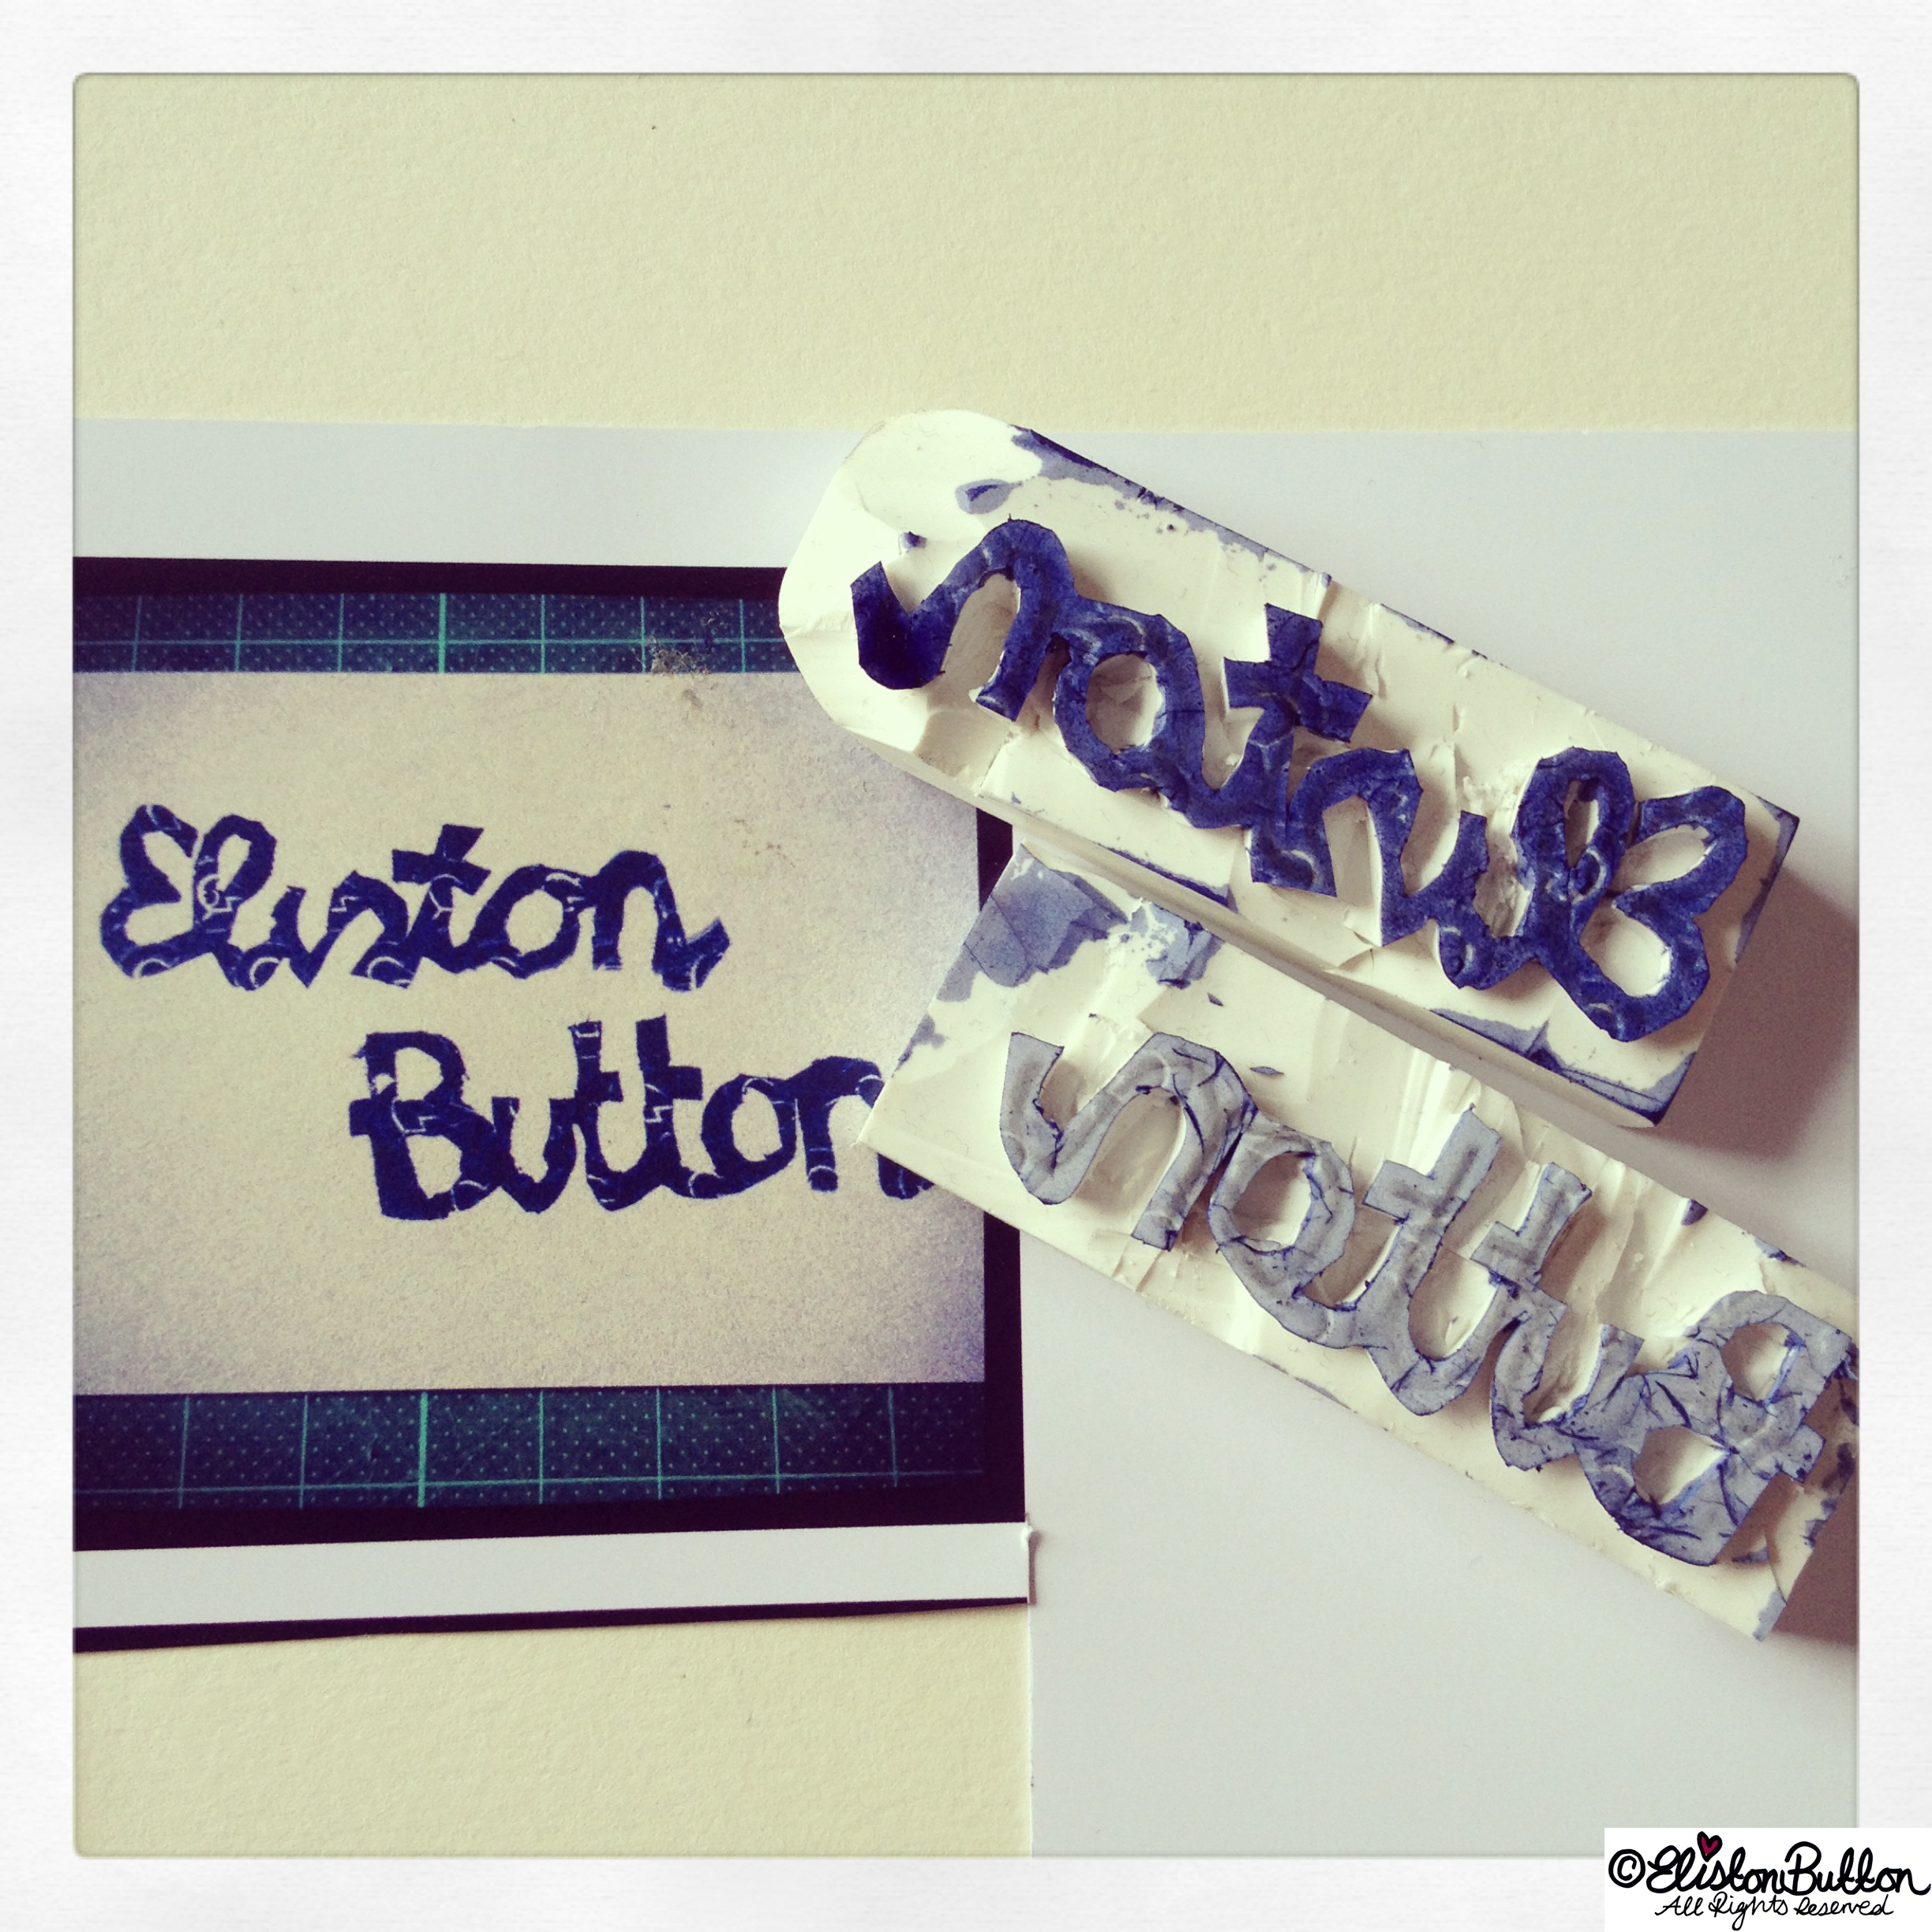 Eliston Button Hand-carved Stamp - Hand Carved Rubber Stamps at www.elistonbutton.com - Eliston Button - That Crafty Kid – Art, Design, Craft & Adventure.